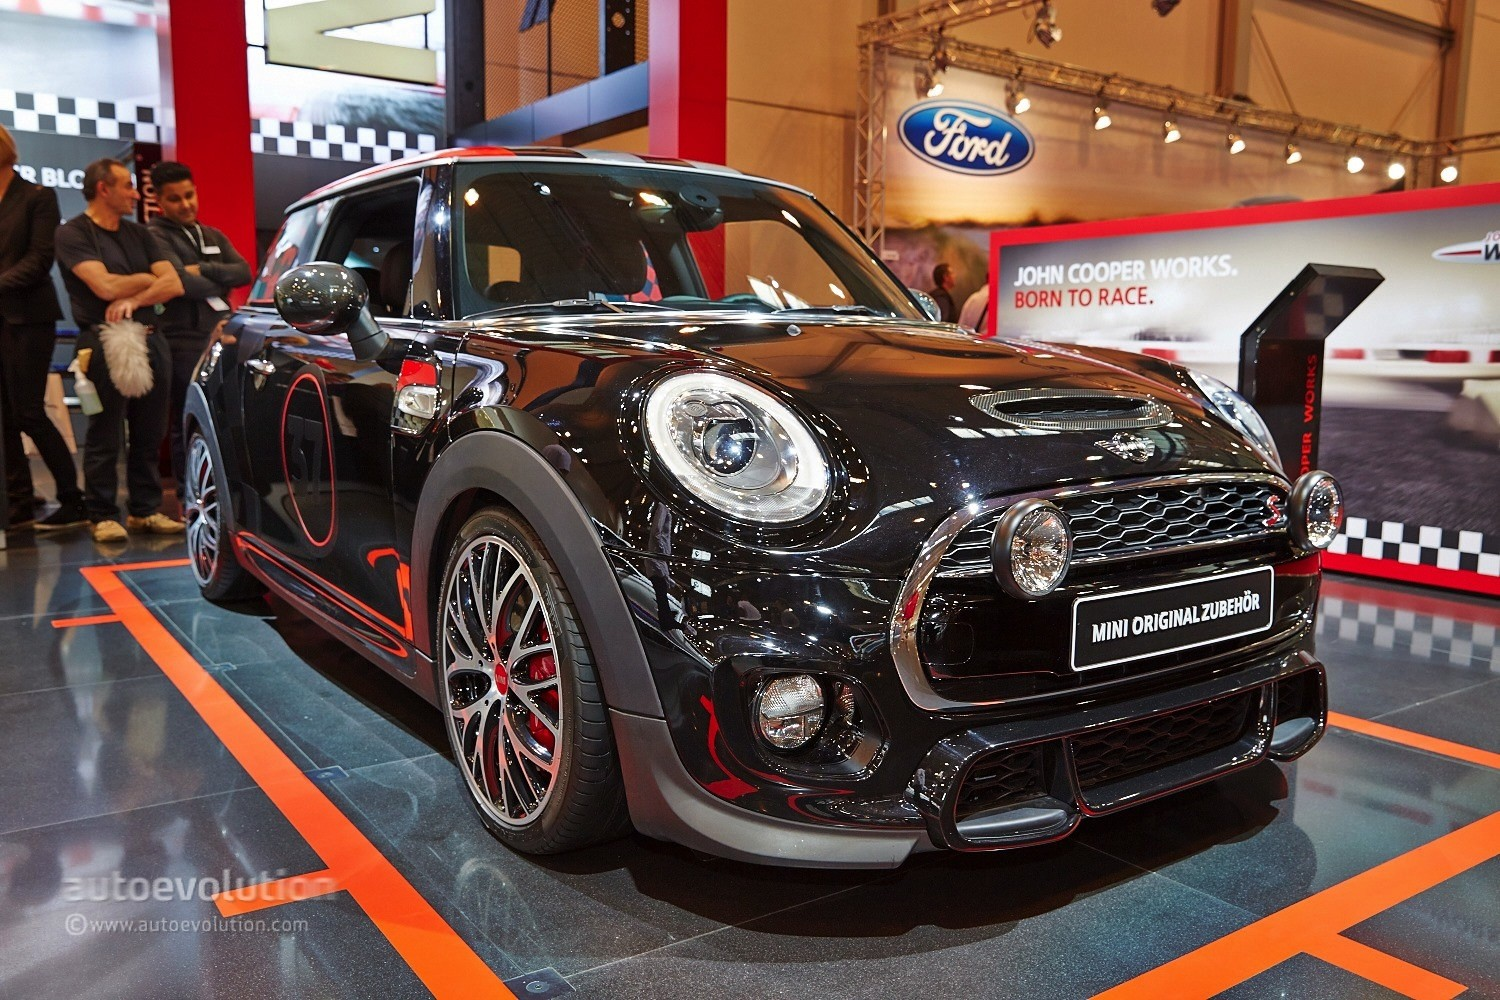 2017 Mini Cooper S With Jcw Tuning Kit At Essen